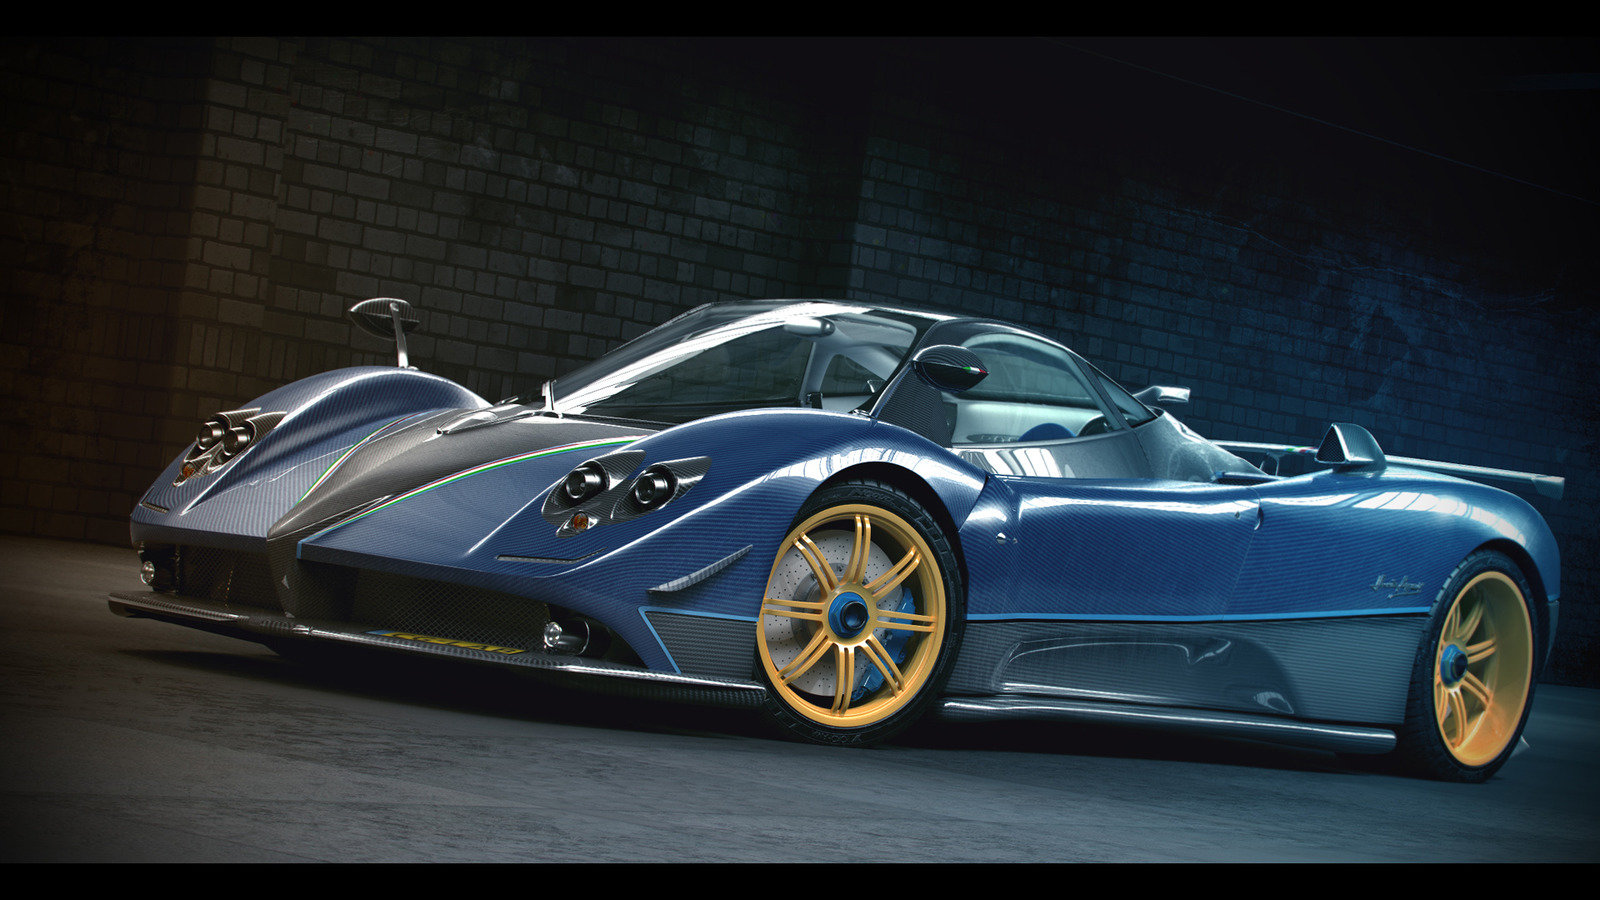 Best Pagani Zonda background ID:161210 for High Resolution hd 1600x900 desktop